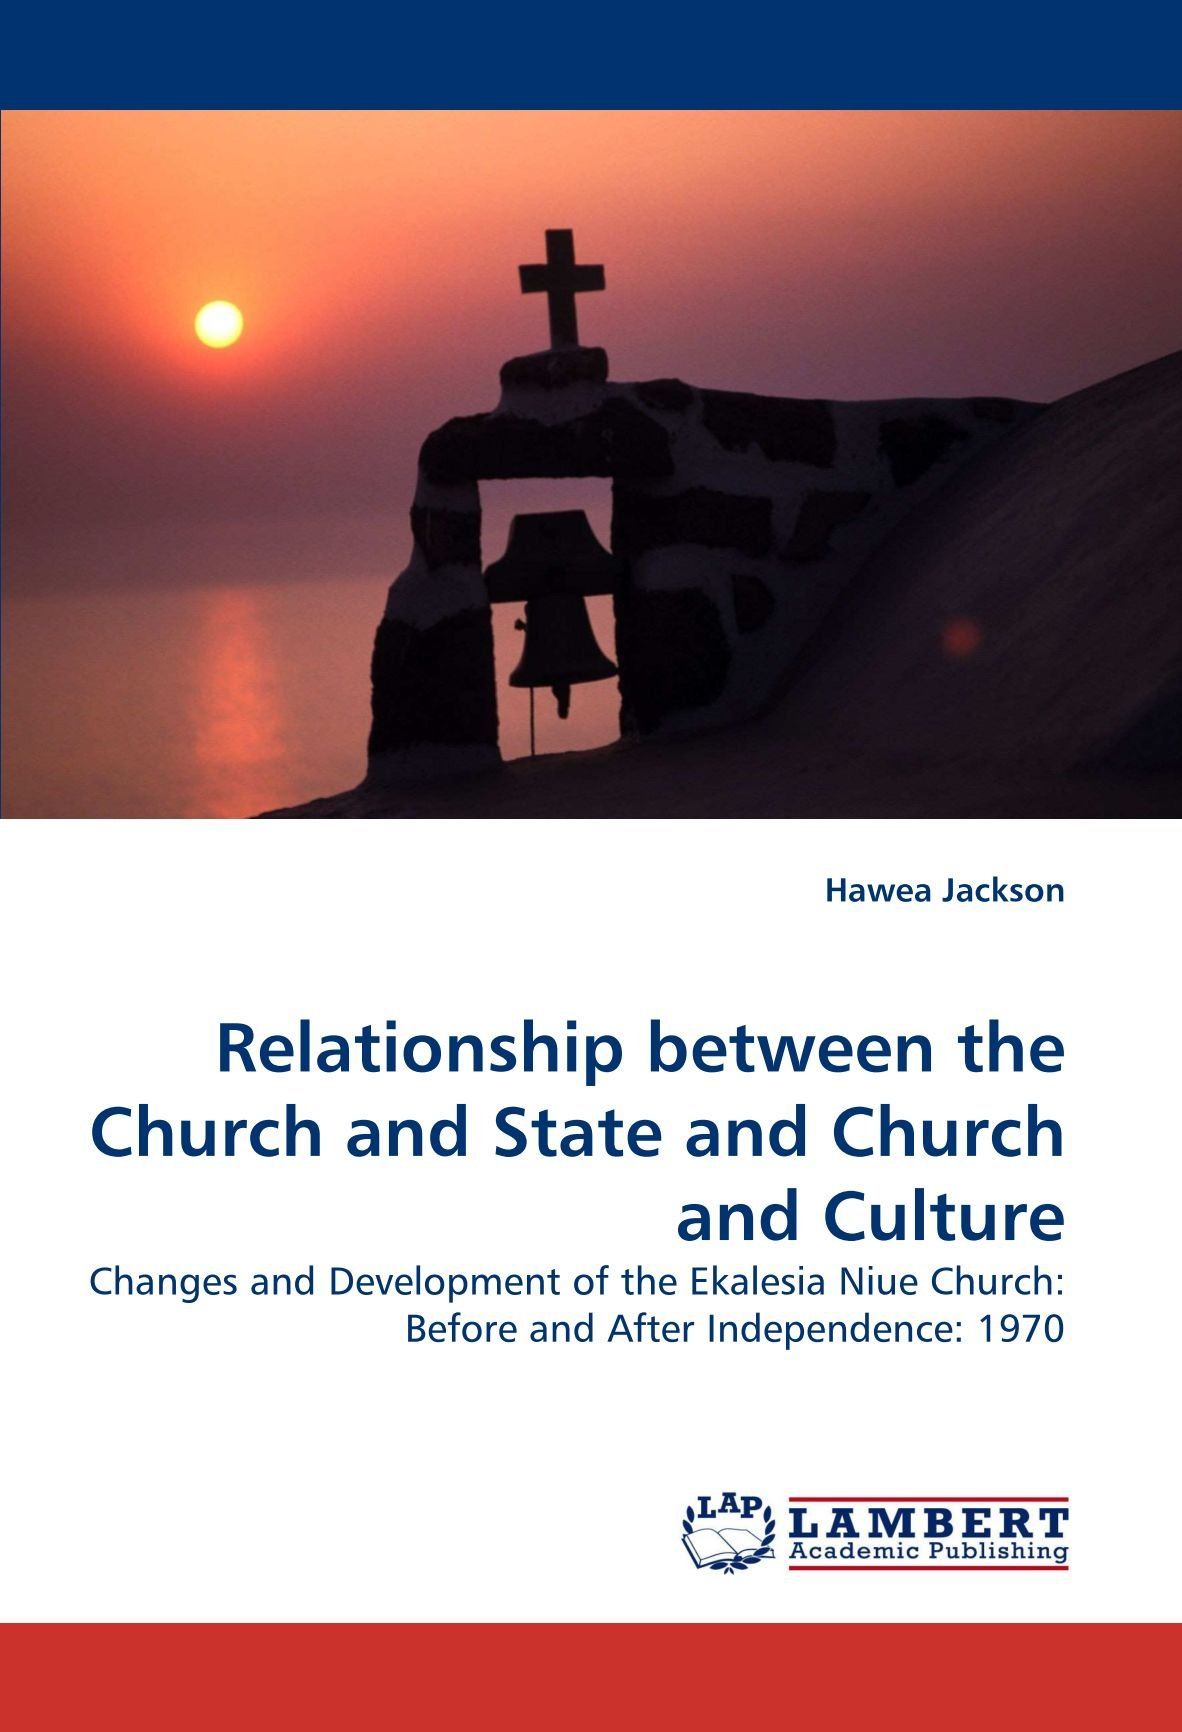 Relationship between the Church and State and Church and Culture: Changes and Development of the Ekalesia Niue Church: Before and After Independence: 1970 ebook